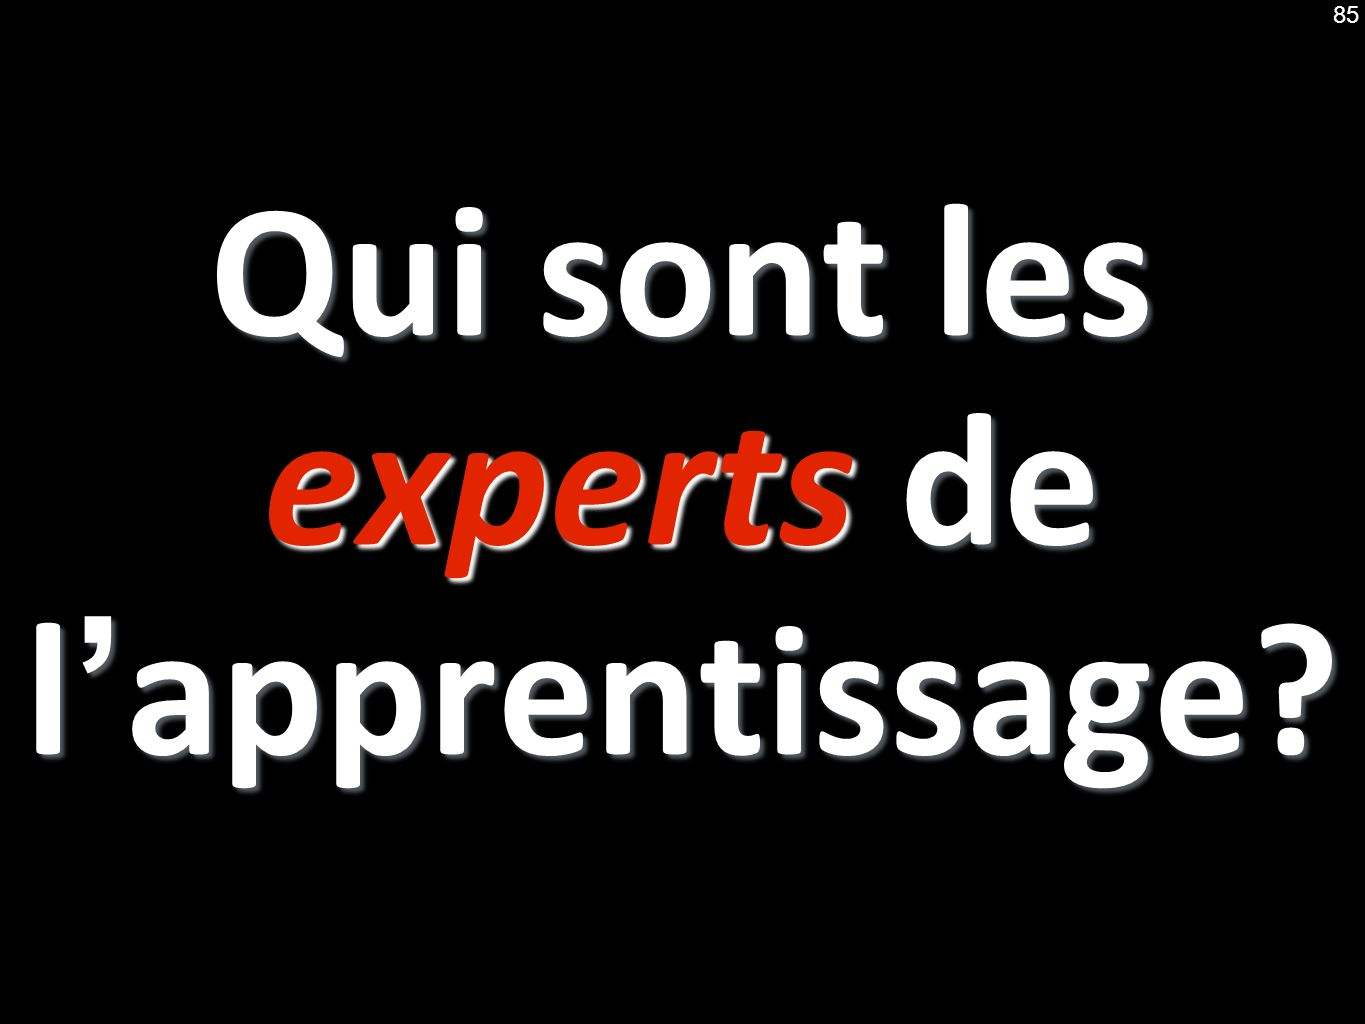 Qui sont les experts de lapprentissage 85